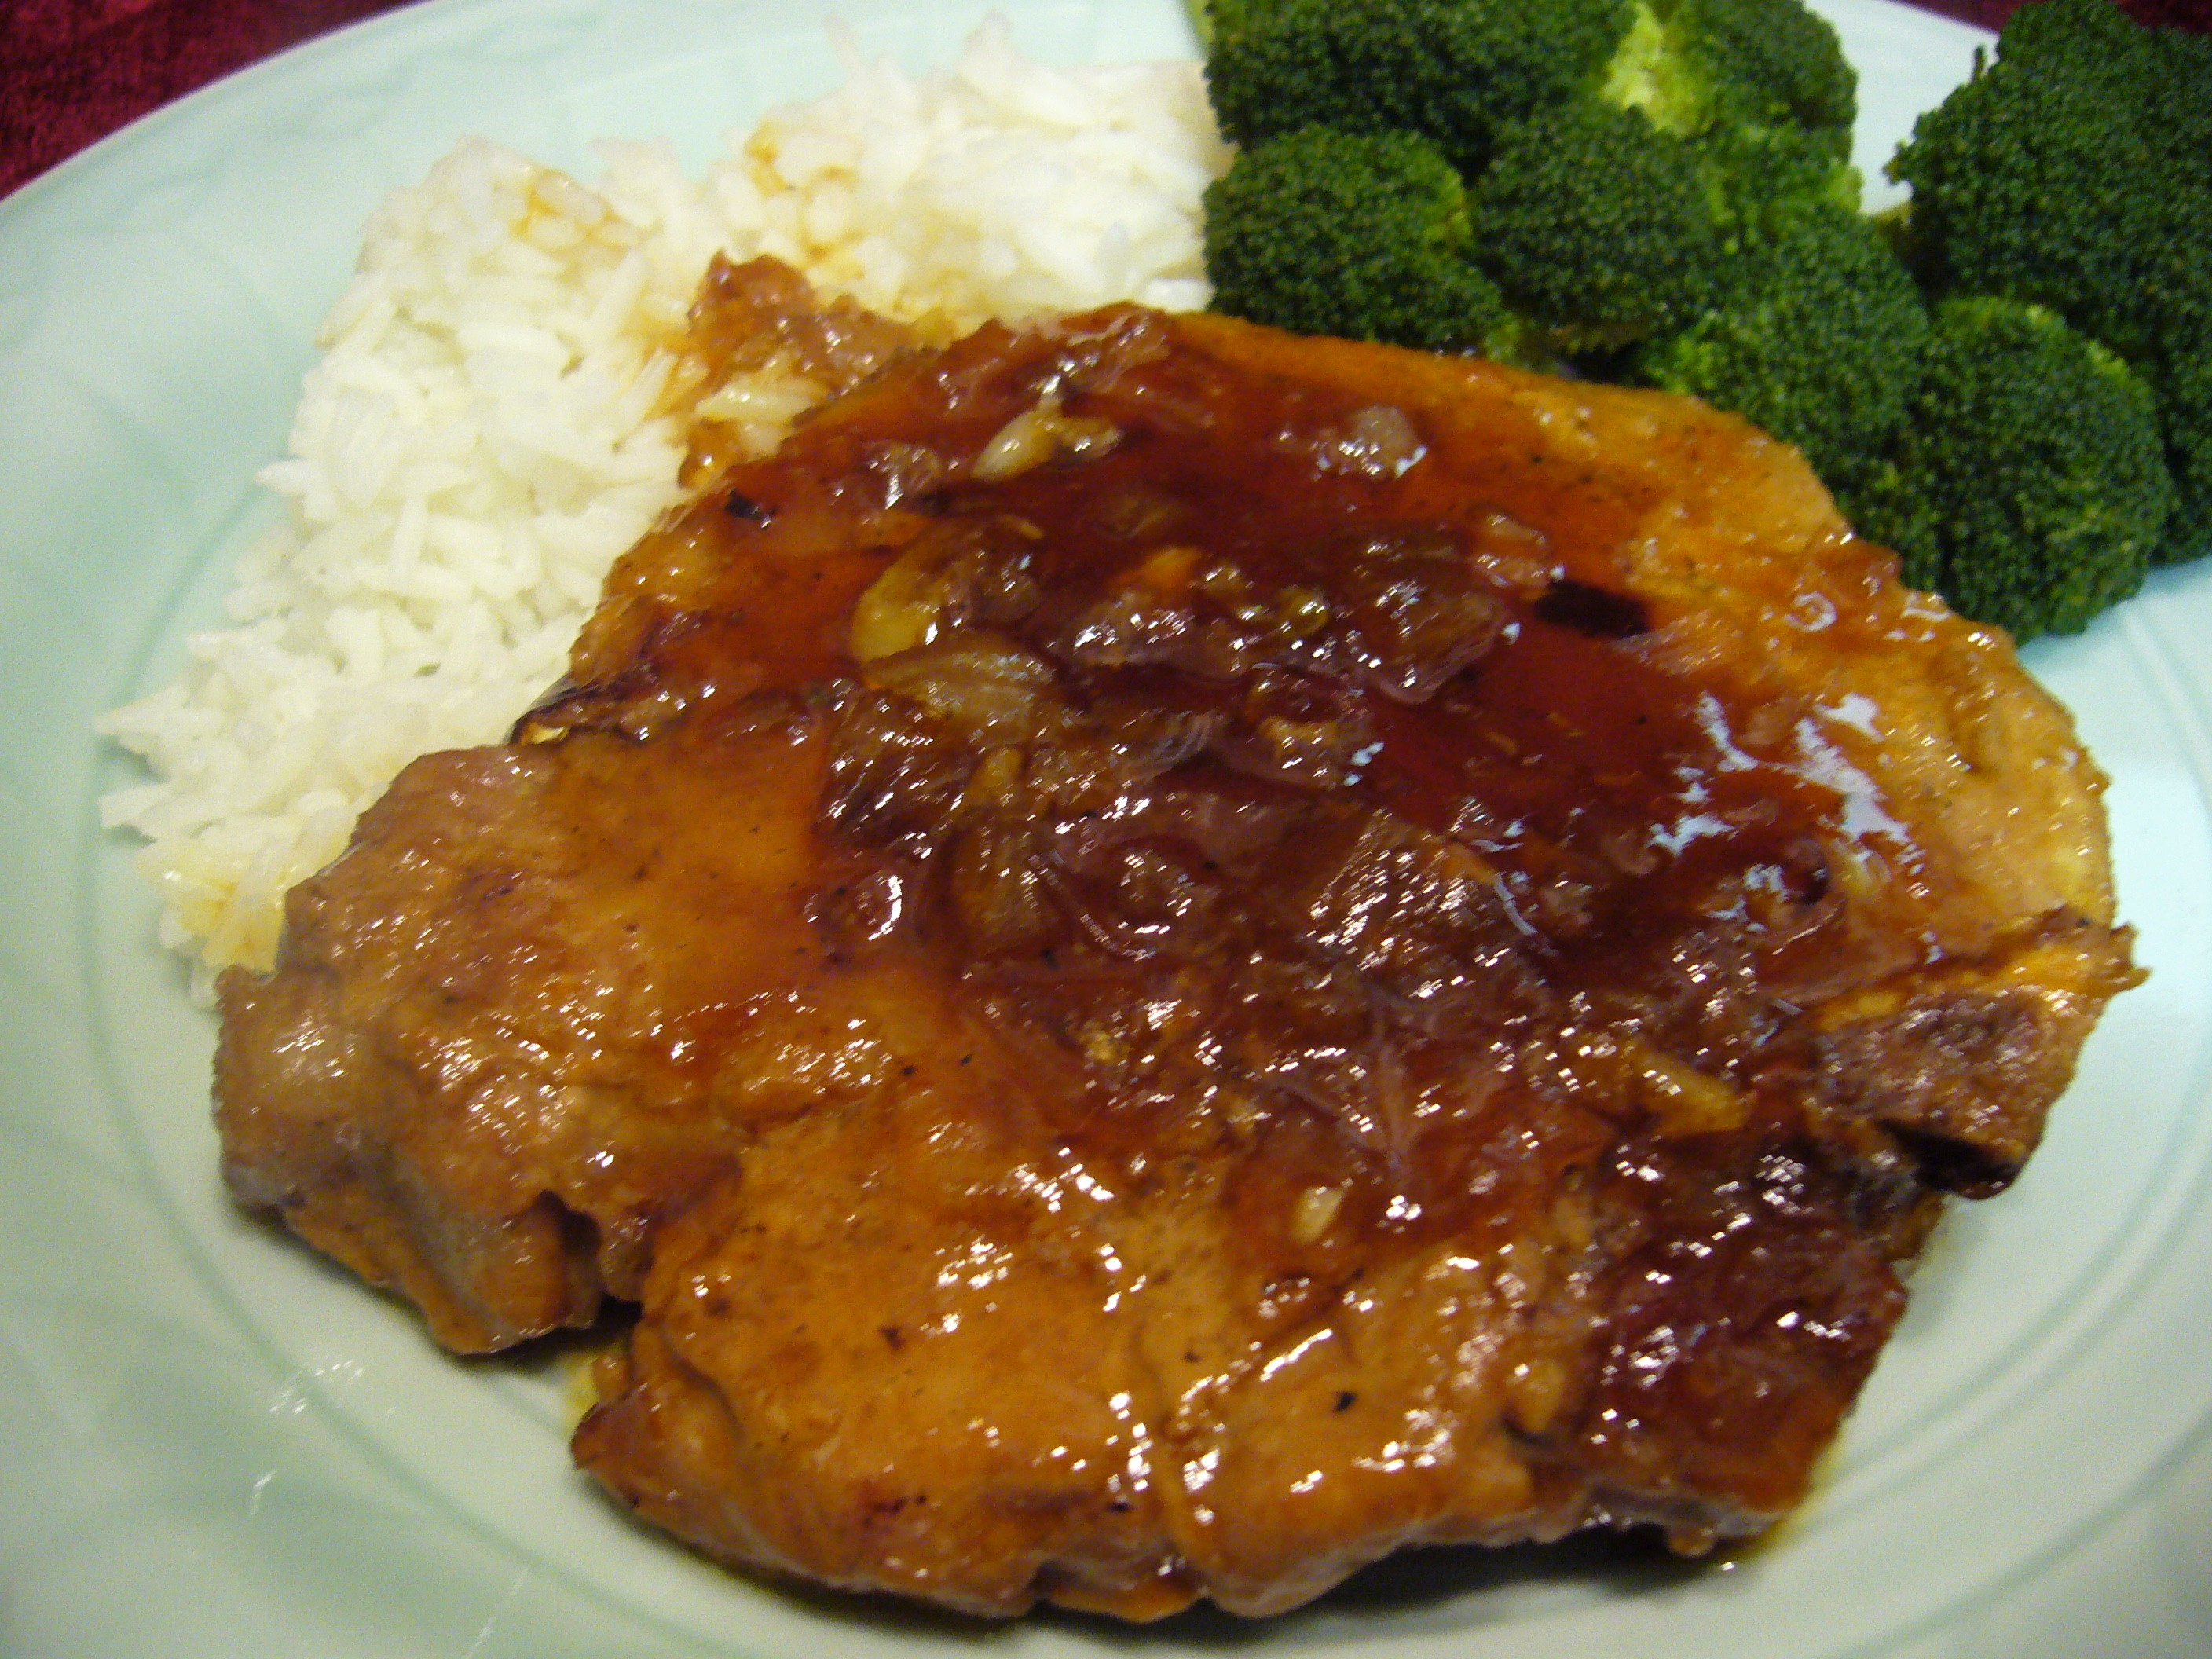 Pork Loin Chops Recipes  Asian Apricot Glazed Pork Loin Chops • Recipes Club Flyers